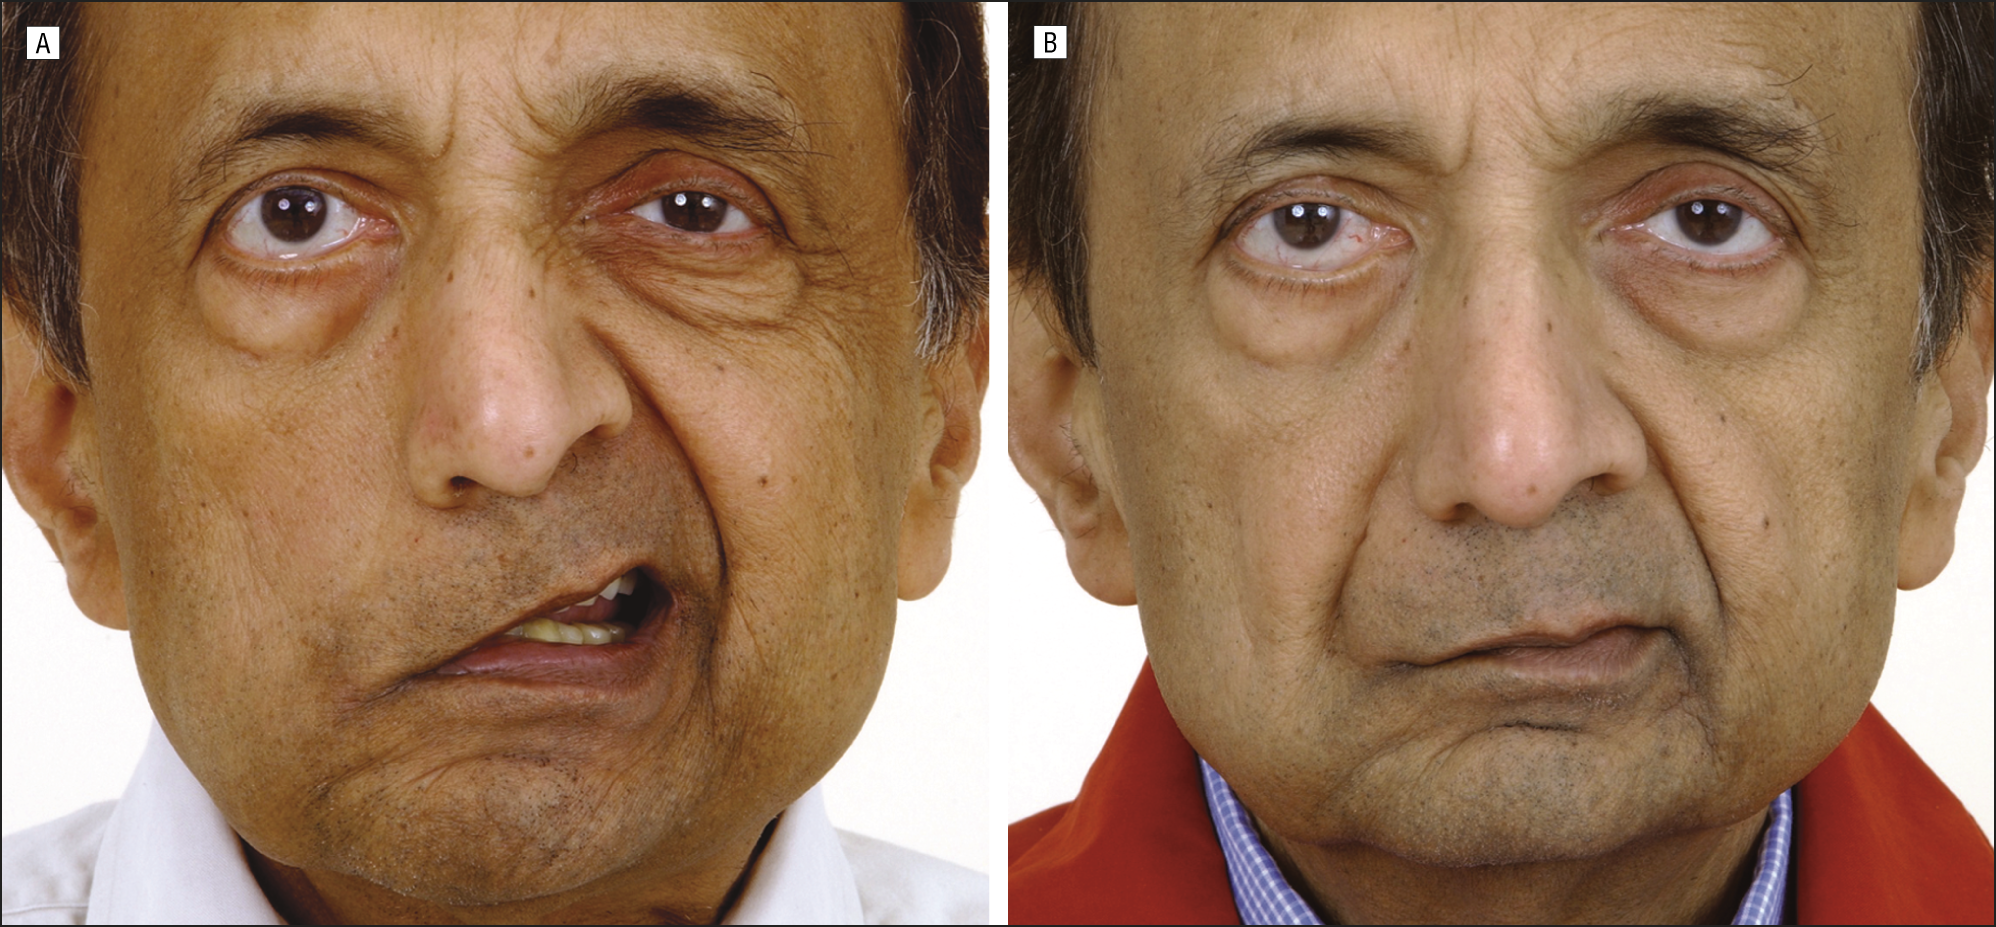 Patient with a history of long-standing facial hemiplegia from a stroke is  shown here